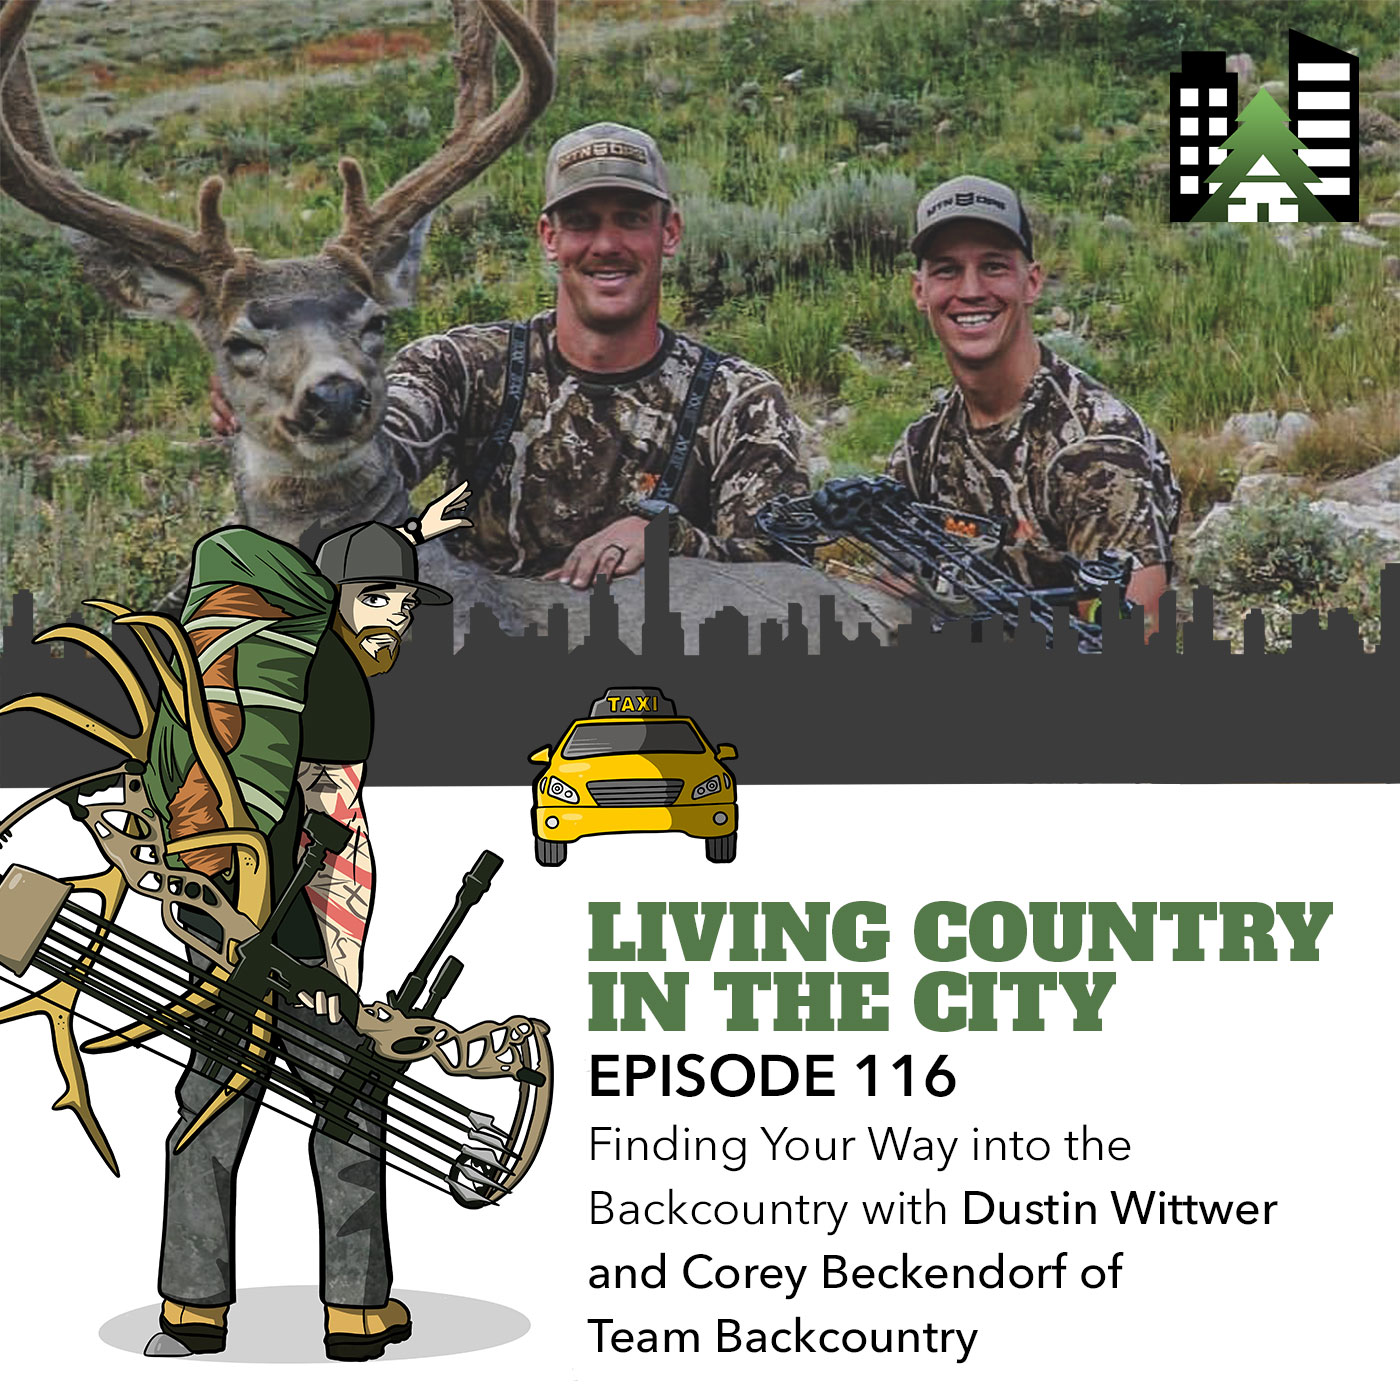 Living Country in the City - Episode 116 - Finding Your Way into the Backcountry with Dustin Wittwer and Corey Beckendorf of Team Backcountry